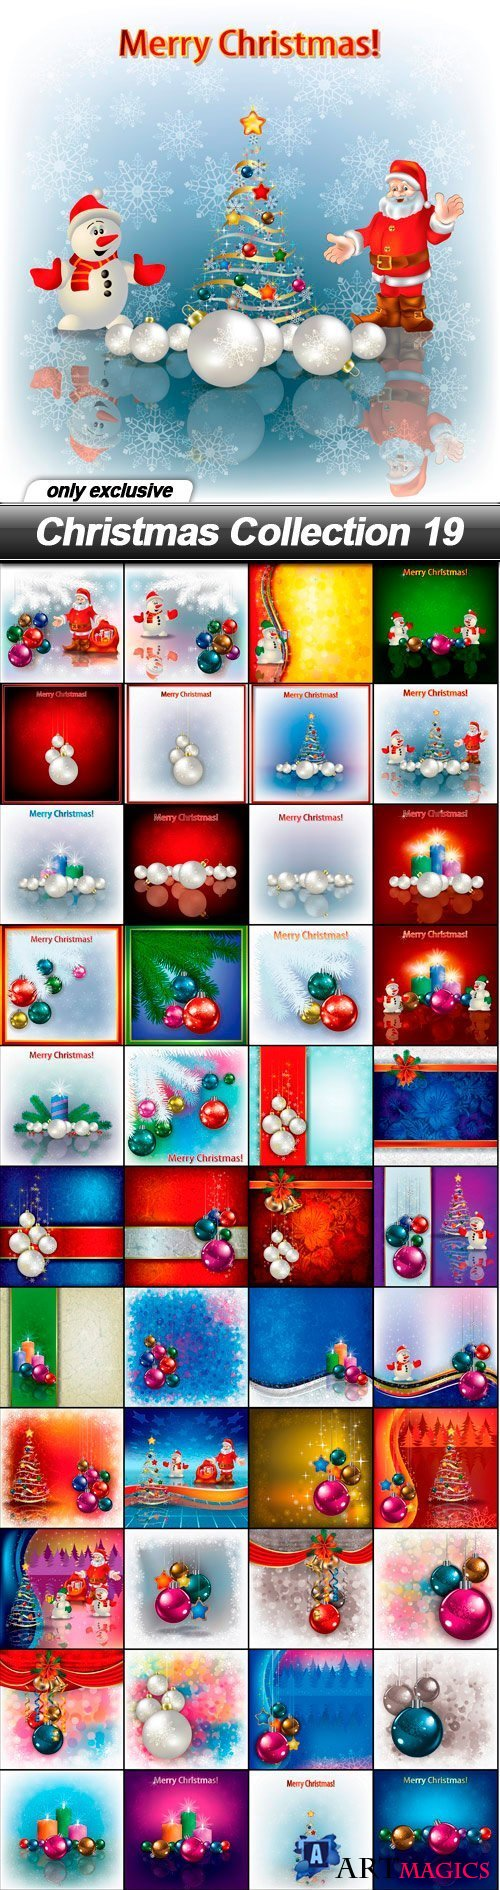 Christmas Collection 19 - 48 EPS